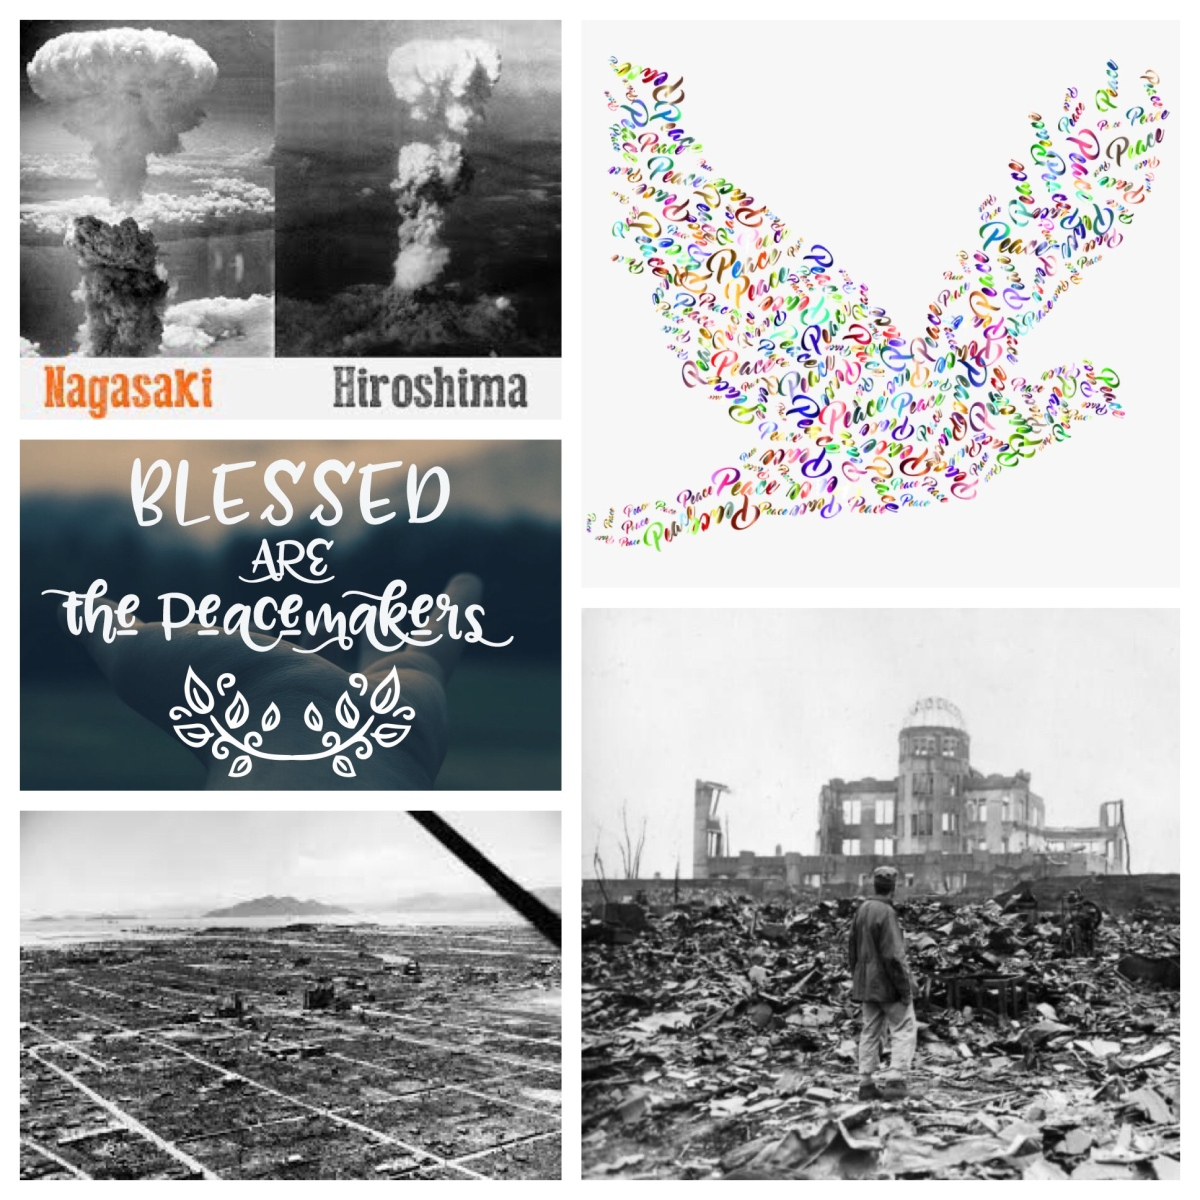 Hiroshima and Nagasaki (1945), and the commitment to seek peace (2020)